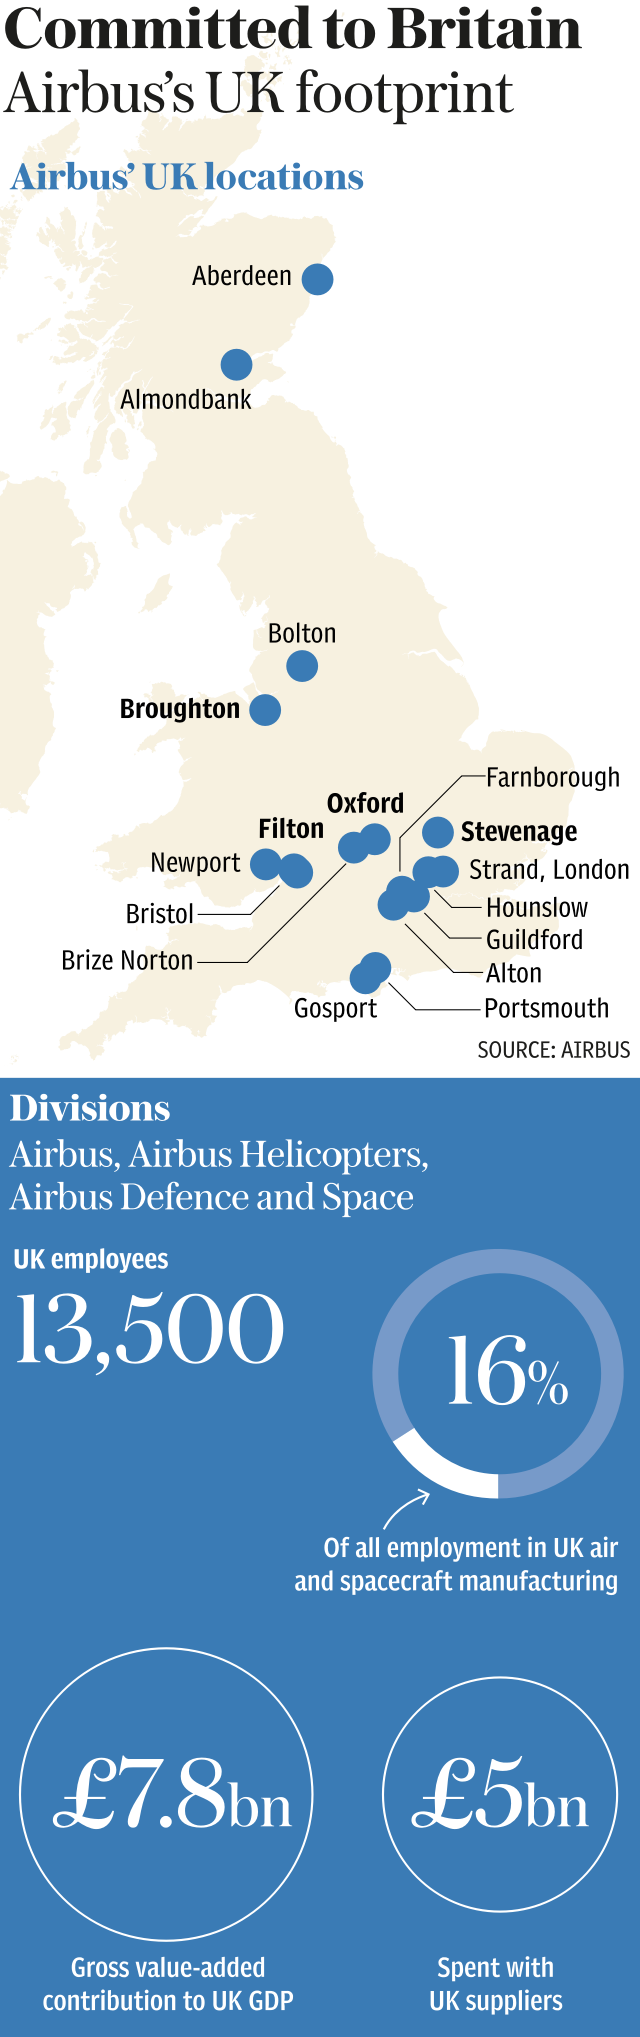 Airbus in the UK - Overall